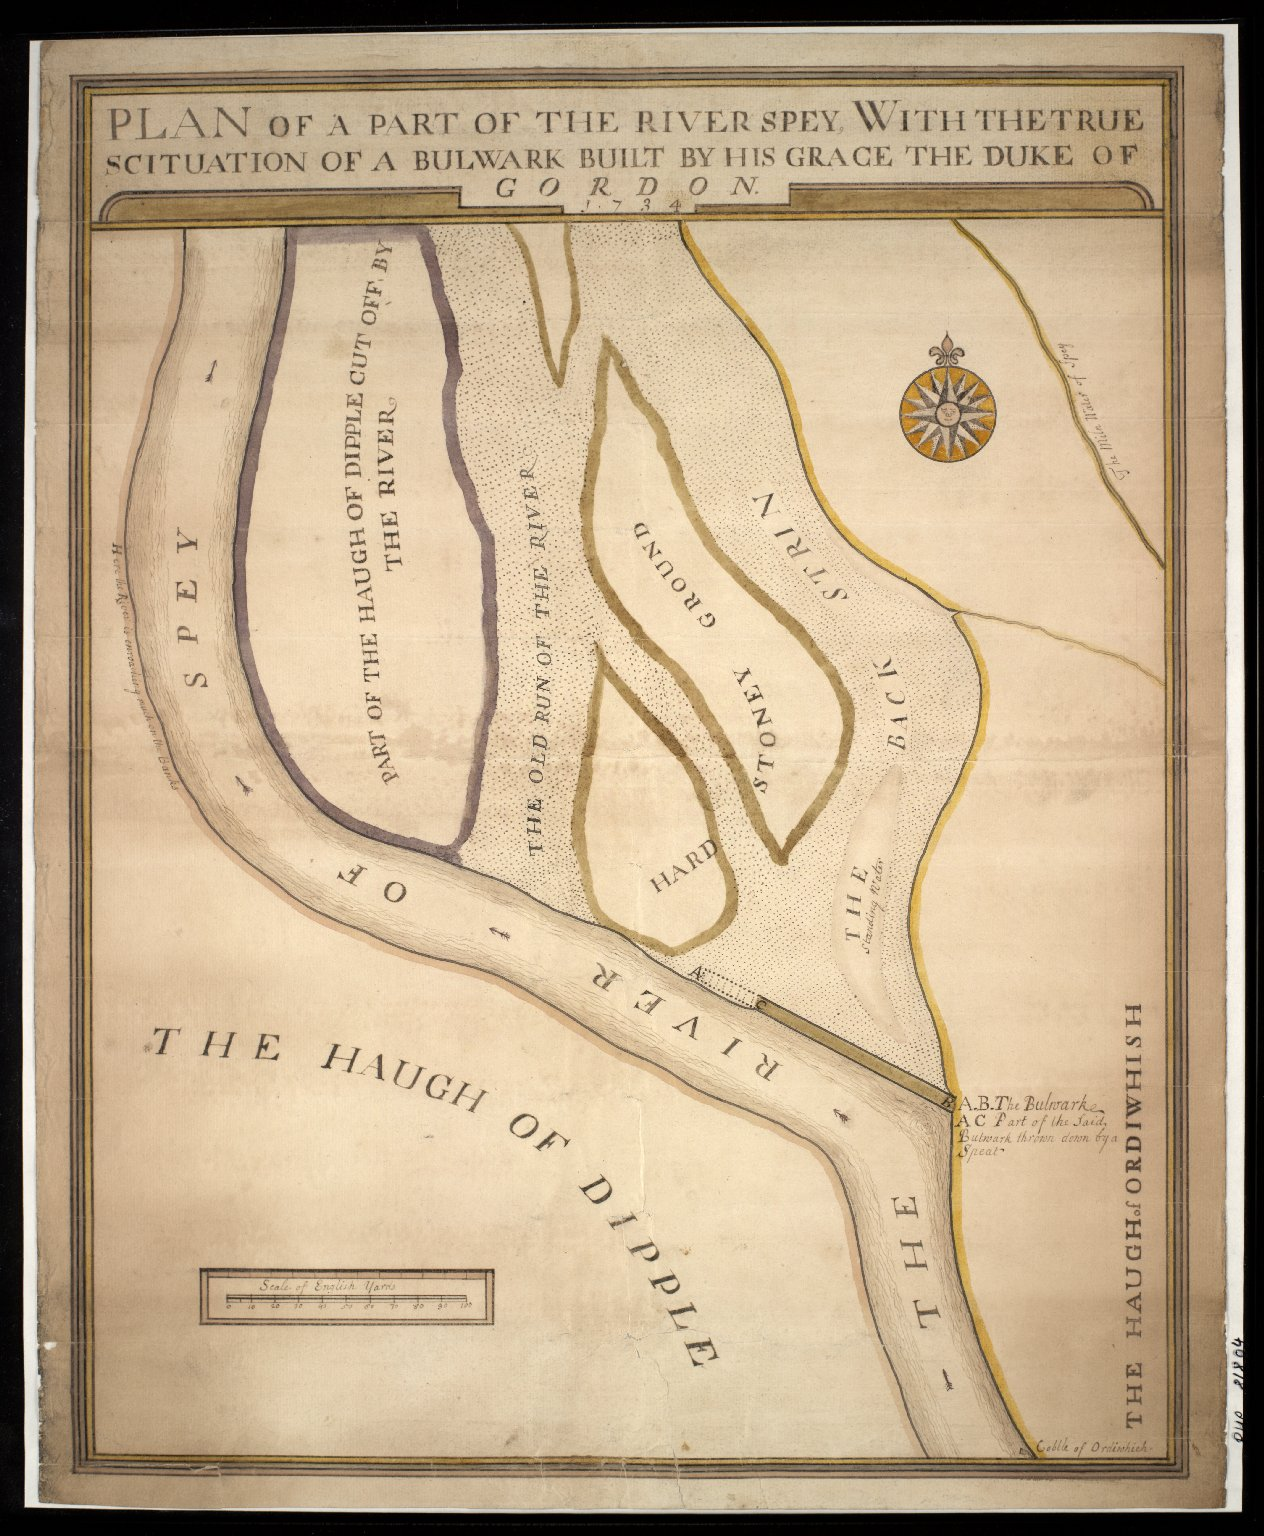 Plan of part of River Spey between Haughs of Dipple and Ordiequish (Ordiwhish) with the true situation of a bulwark built by Duke of Gordon. [1 of 1]